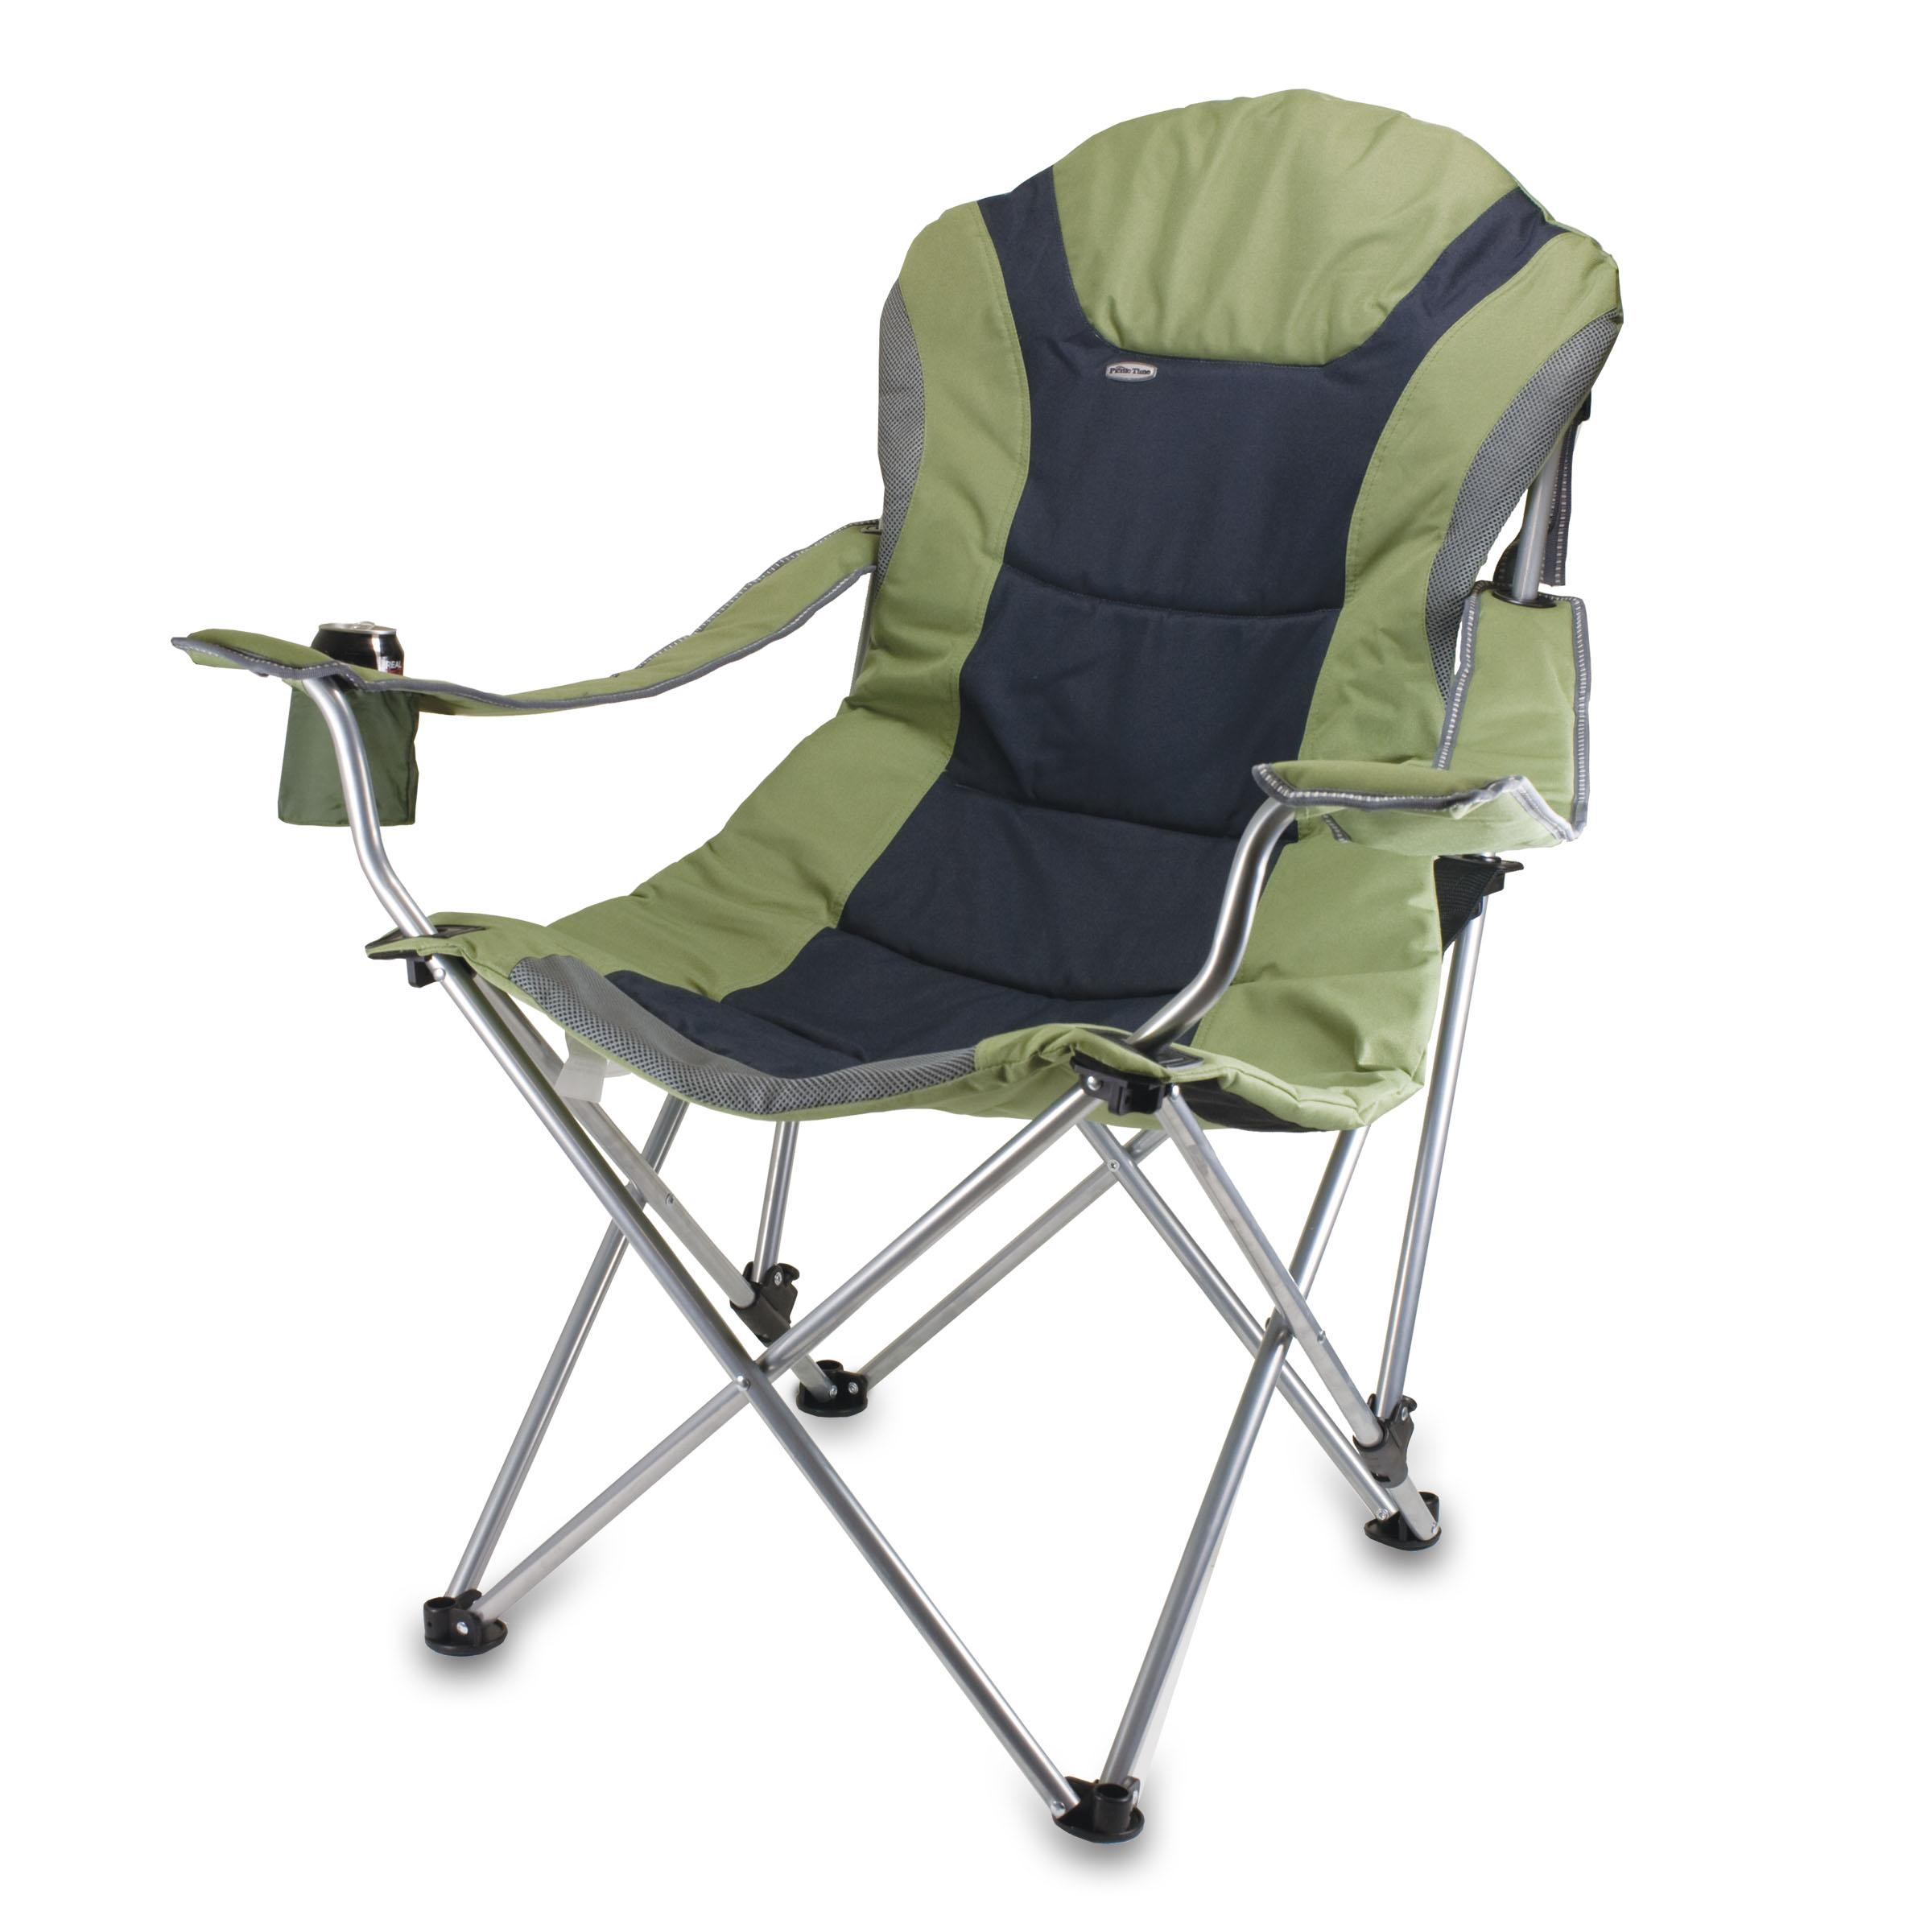 ca chair wayfair pdp gigatent footrest outdoor camping with folding chairs reviews